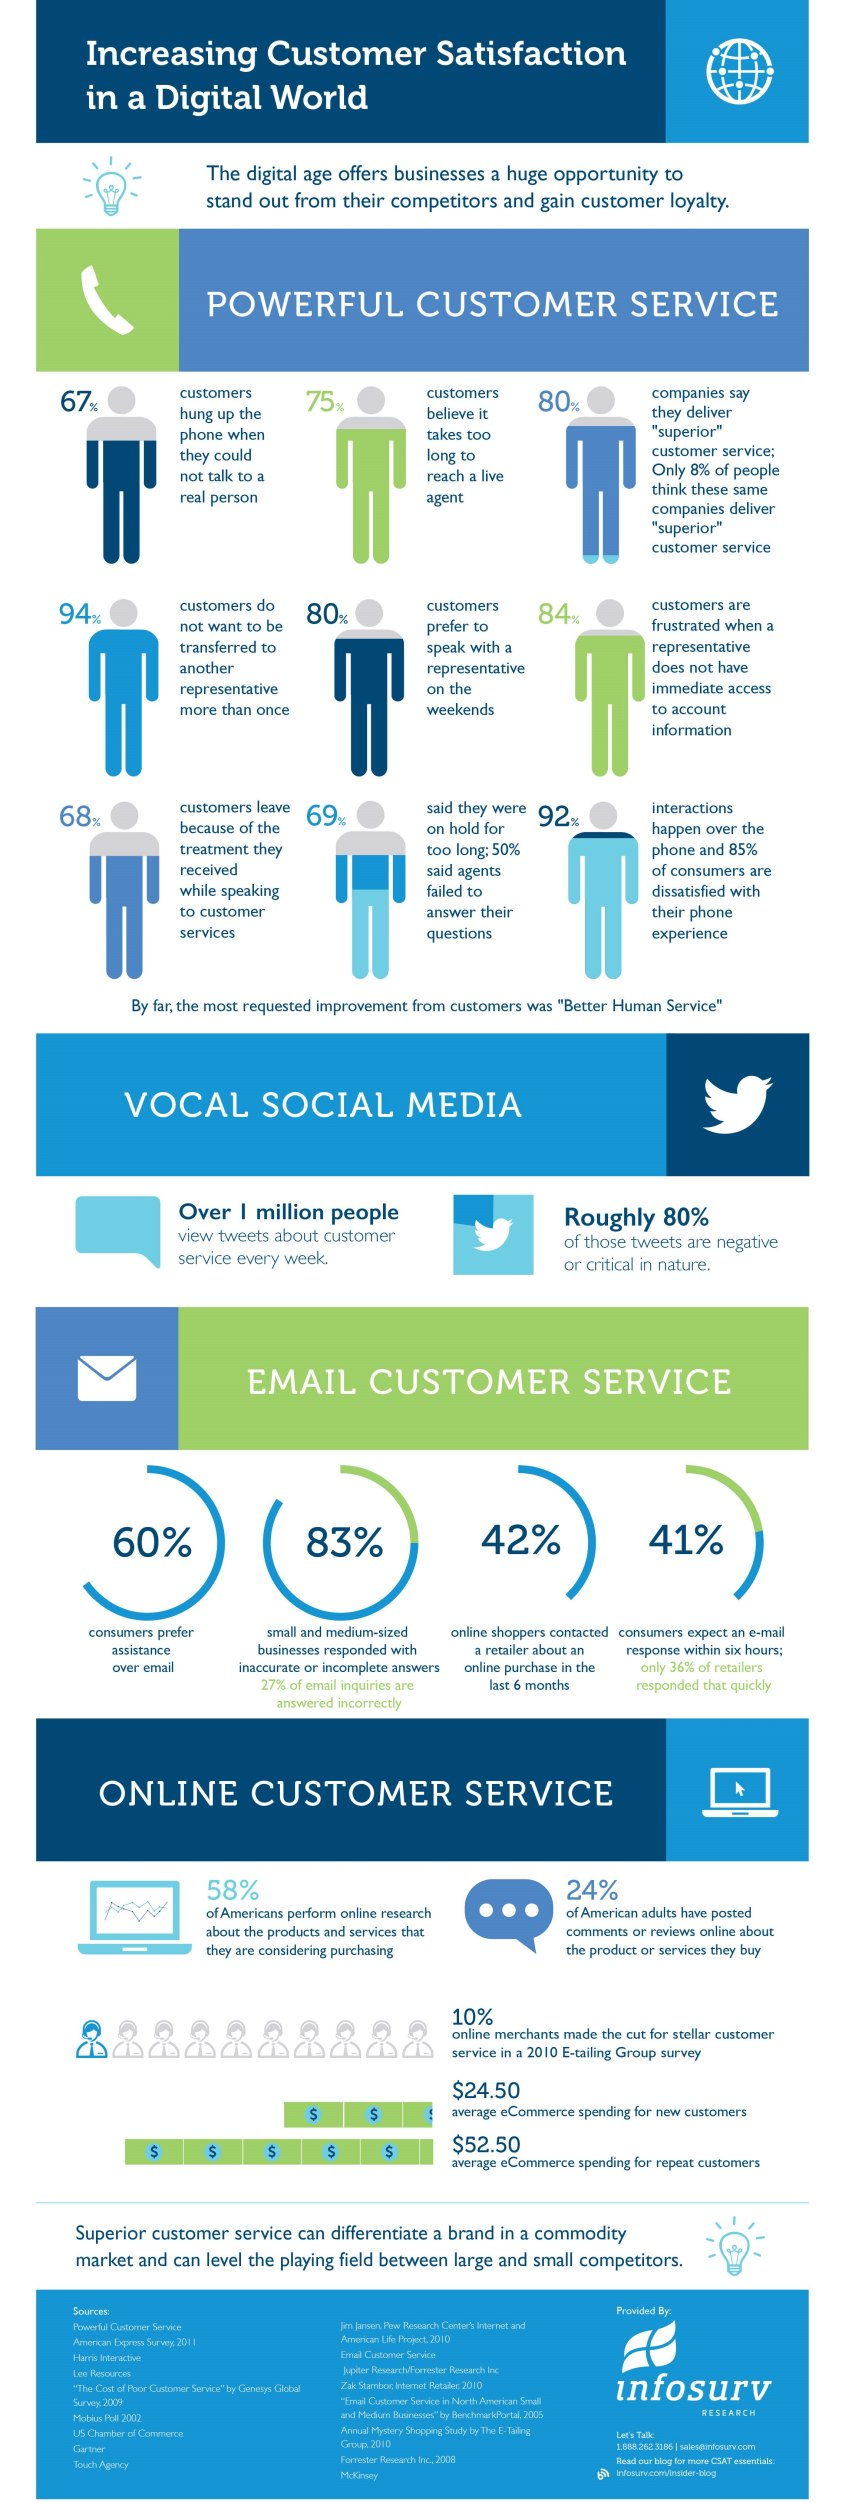 customer satisfaction and social media